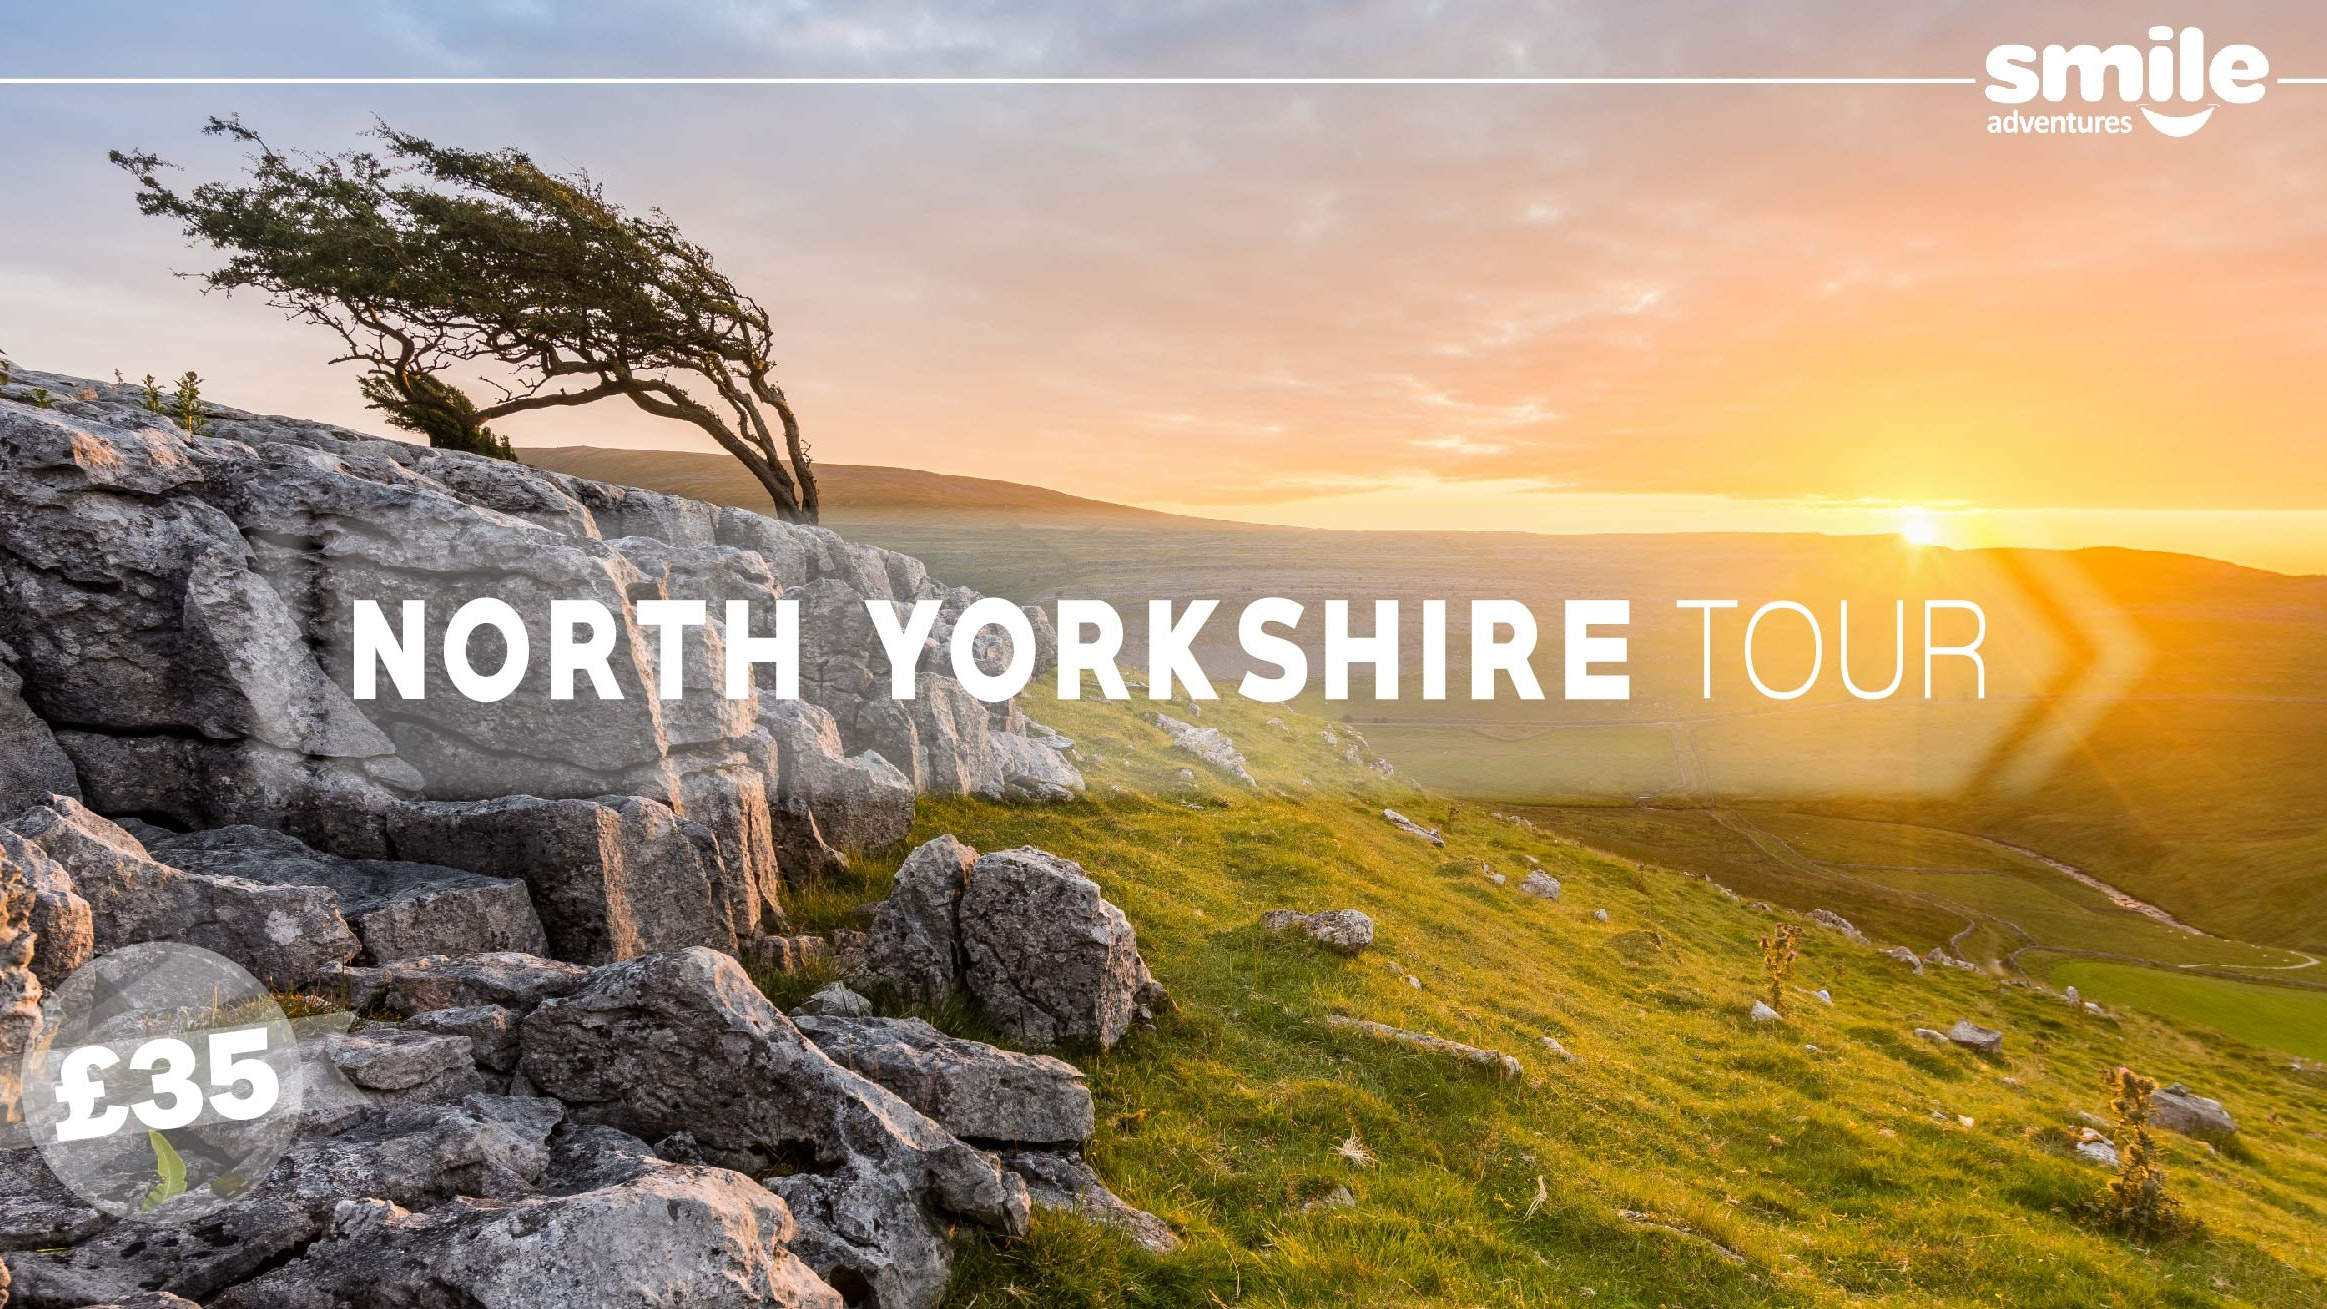 North Yorkshire Tour – From Manchester